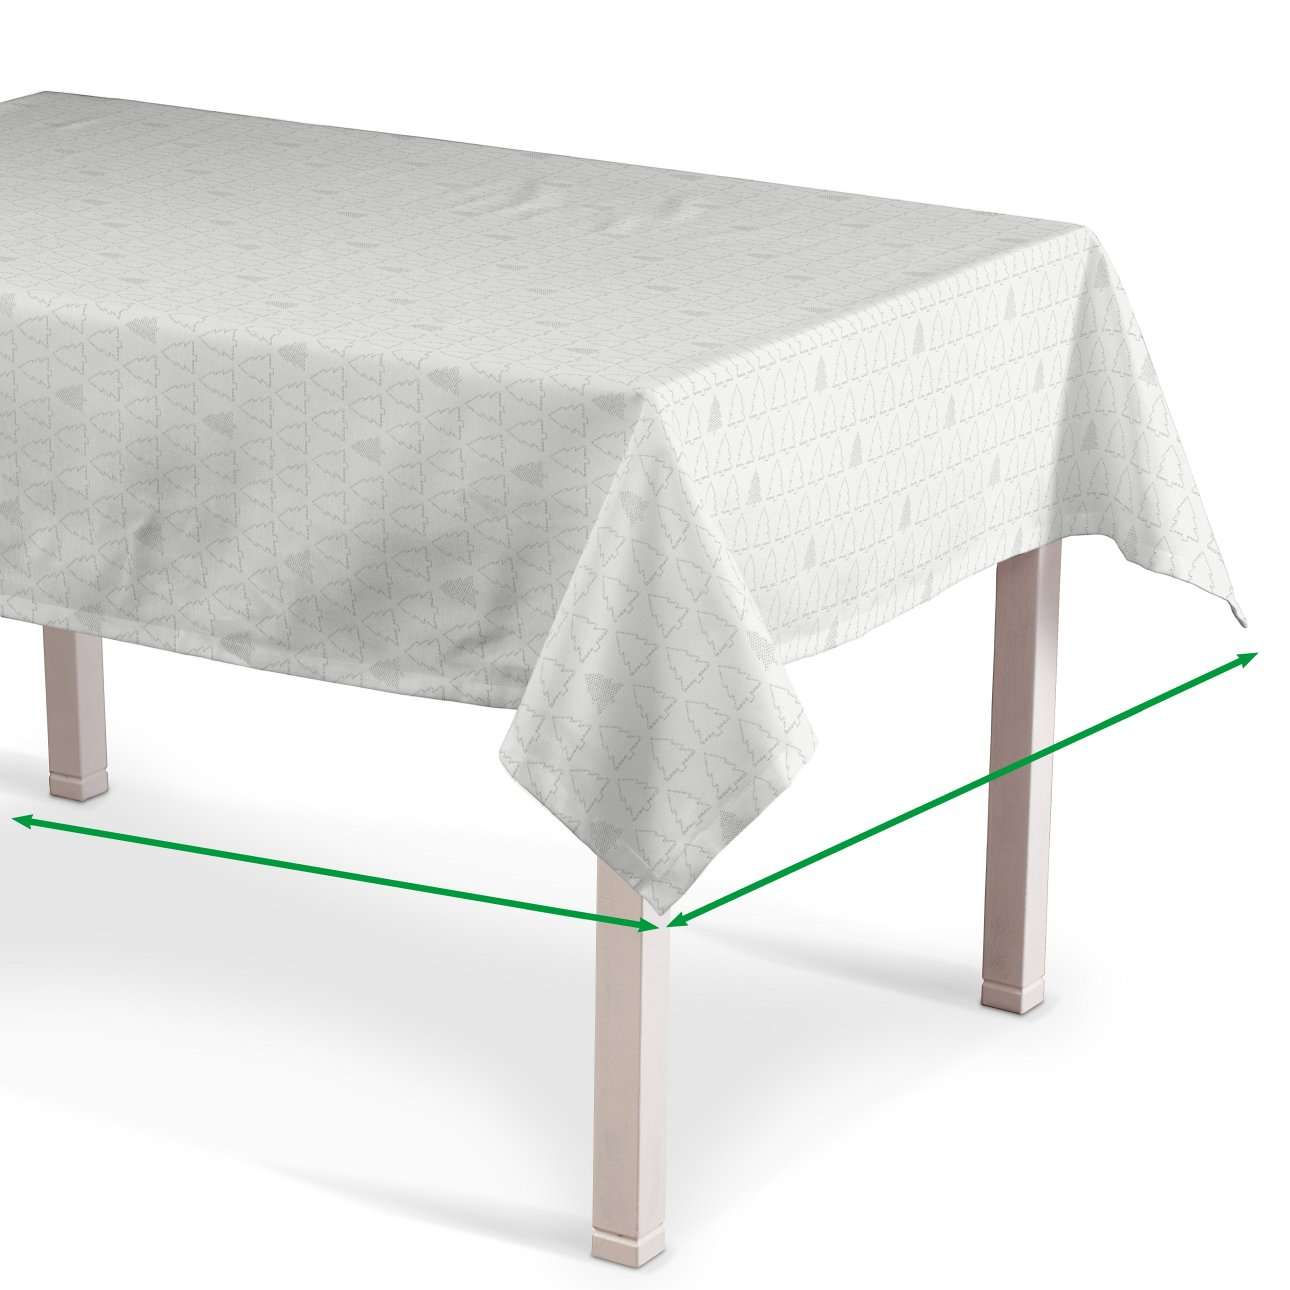 Rectangular tablecloth in collection Christmas, fabric: 629-40